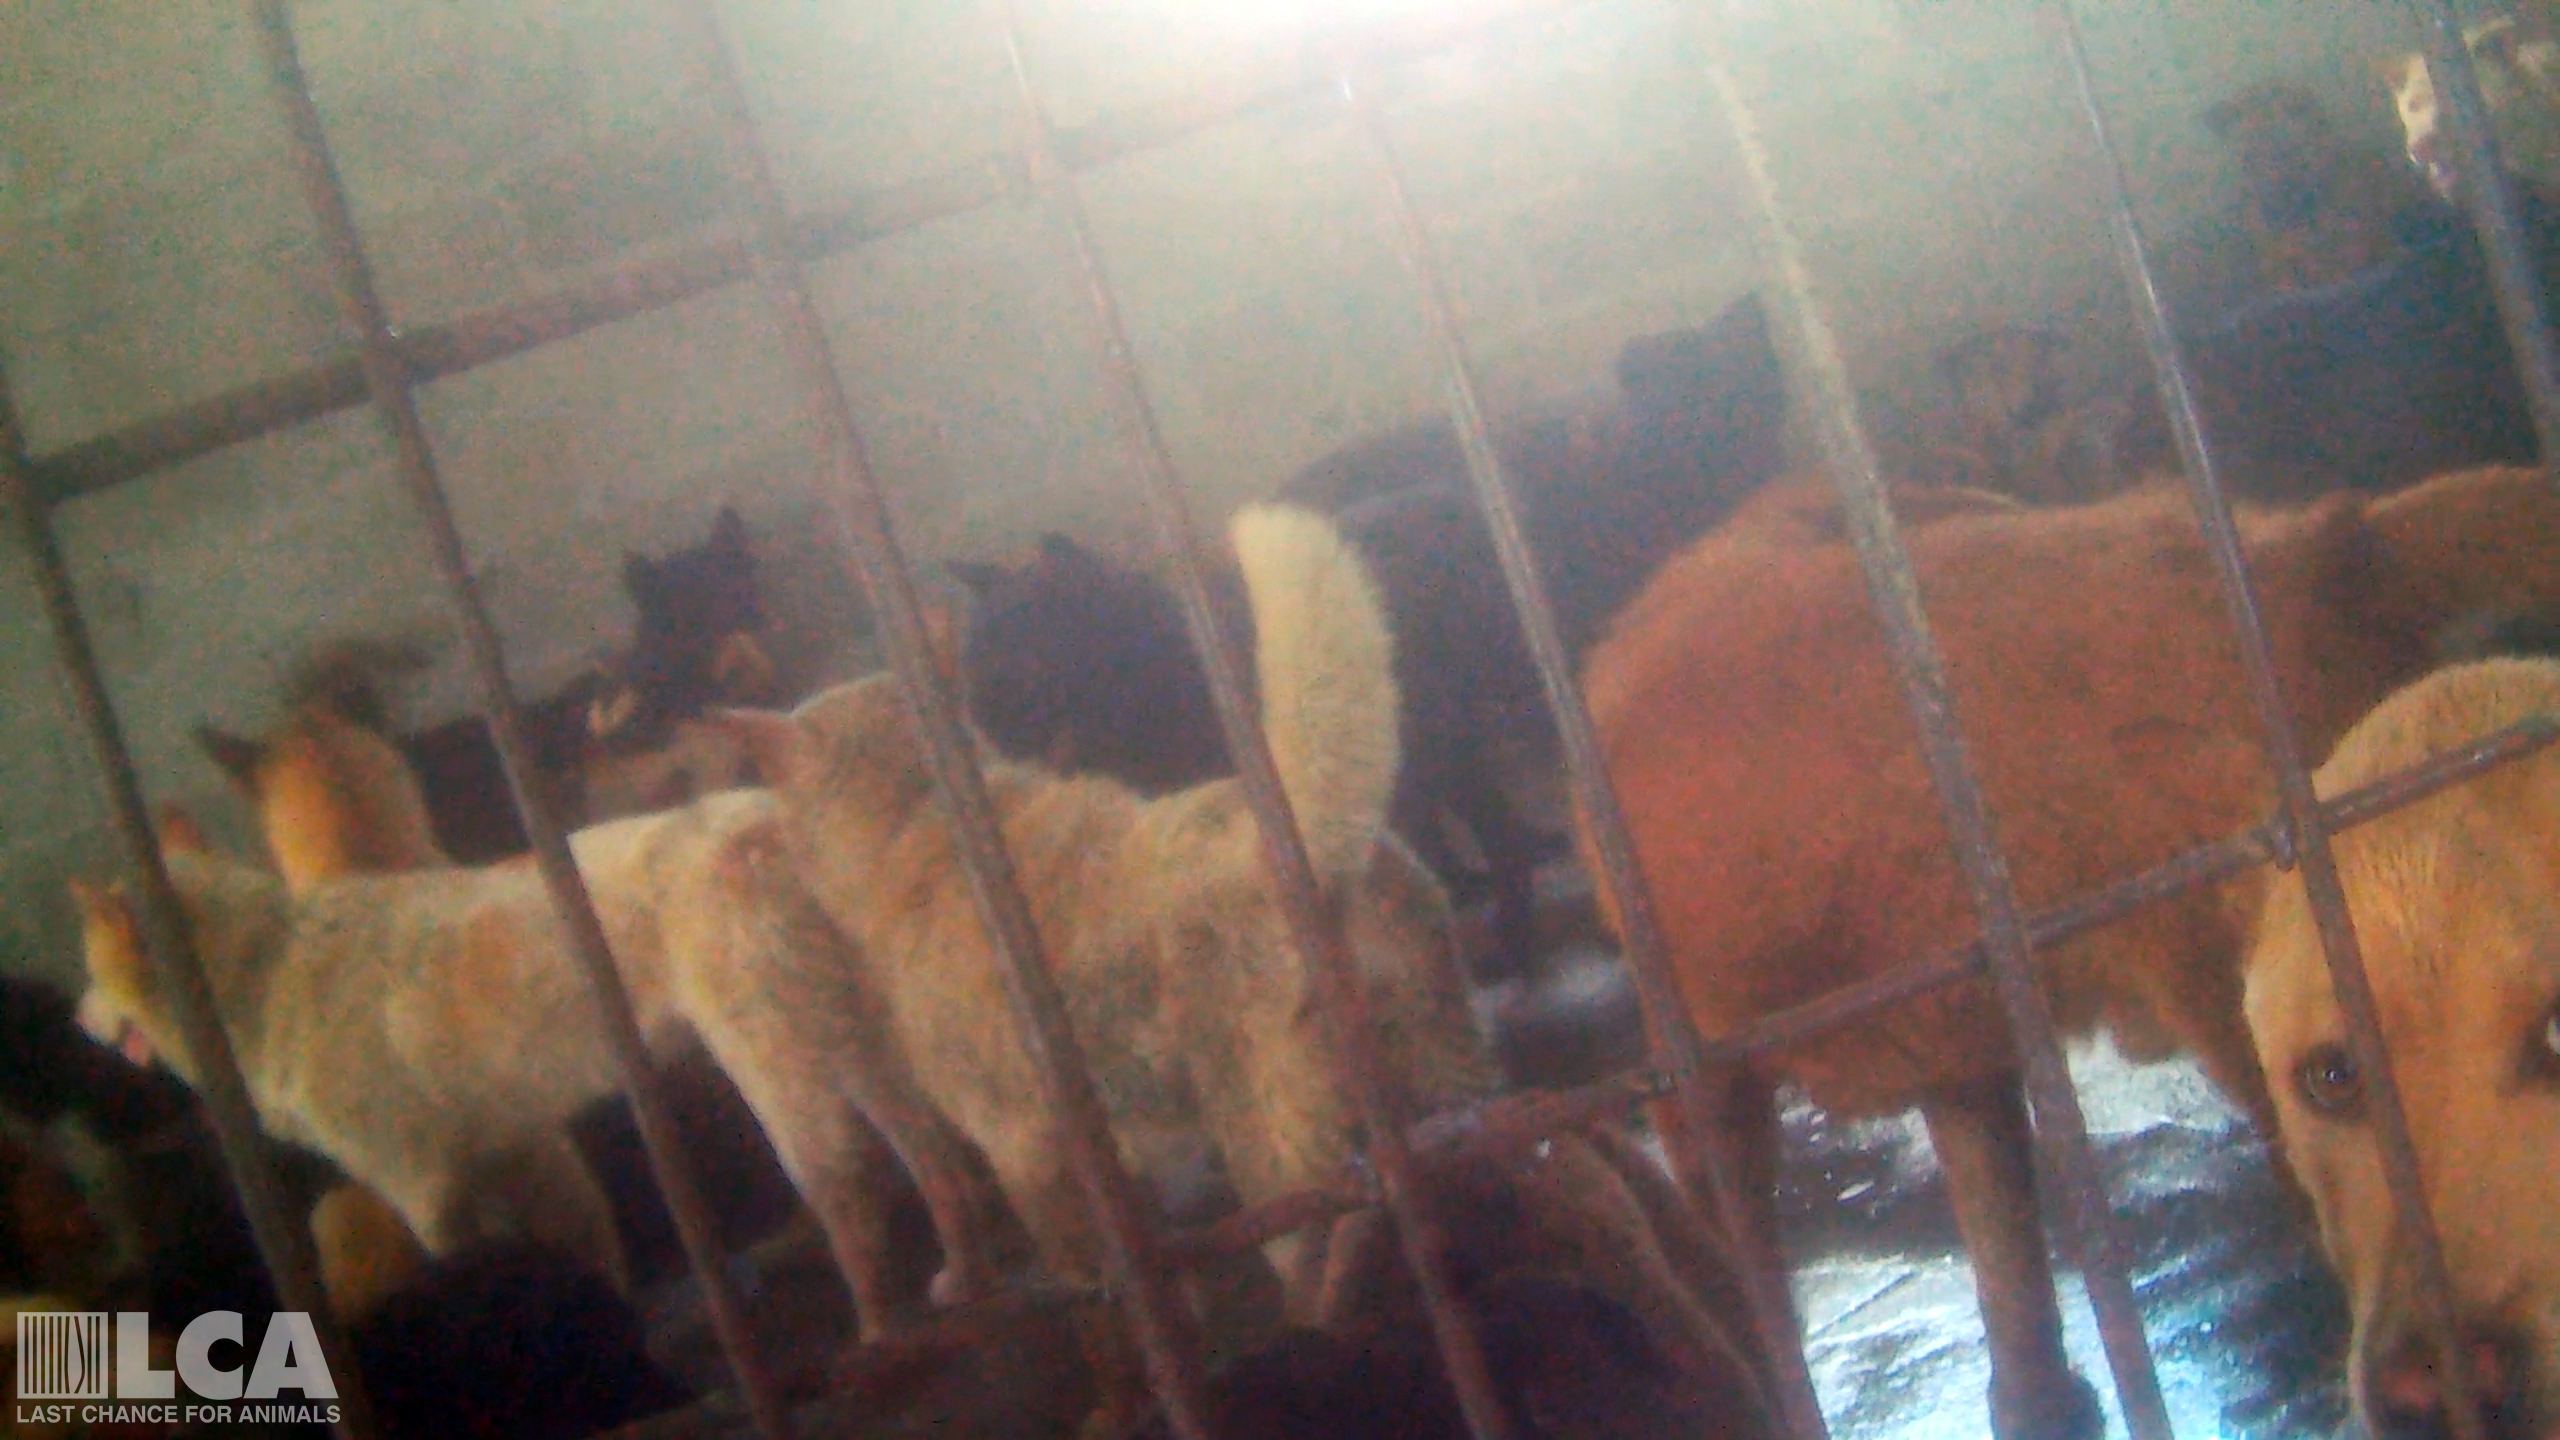 Sign Now to Stop Dog Meat in China! - photo#28